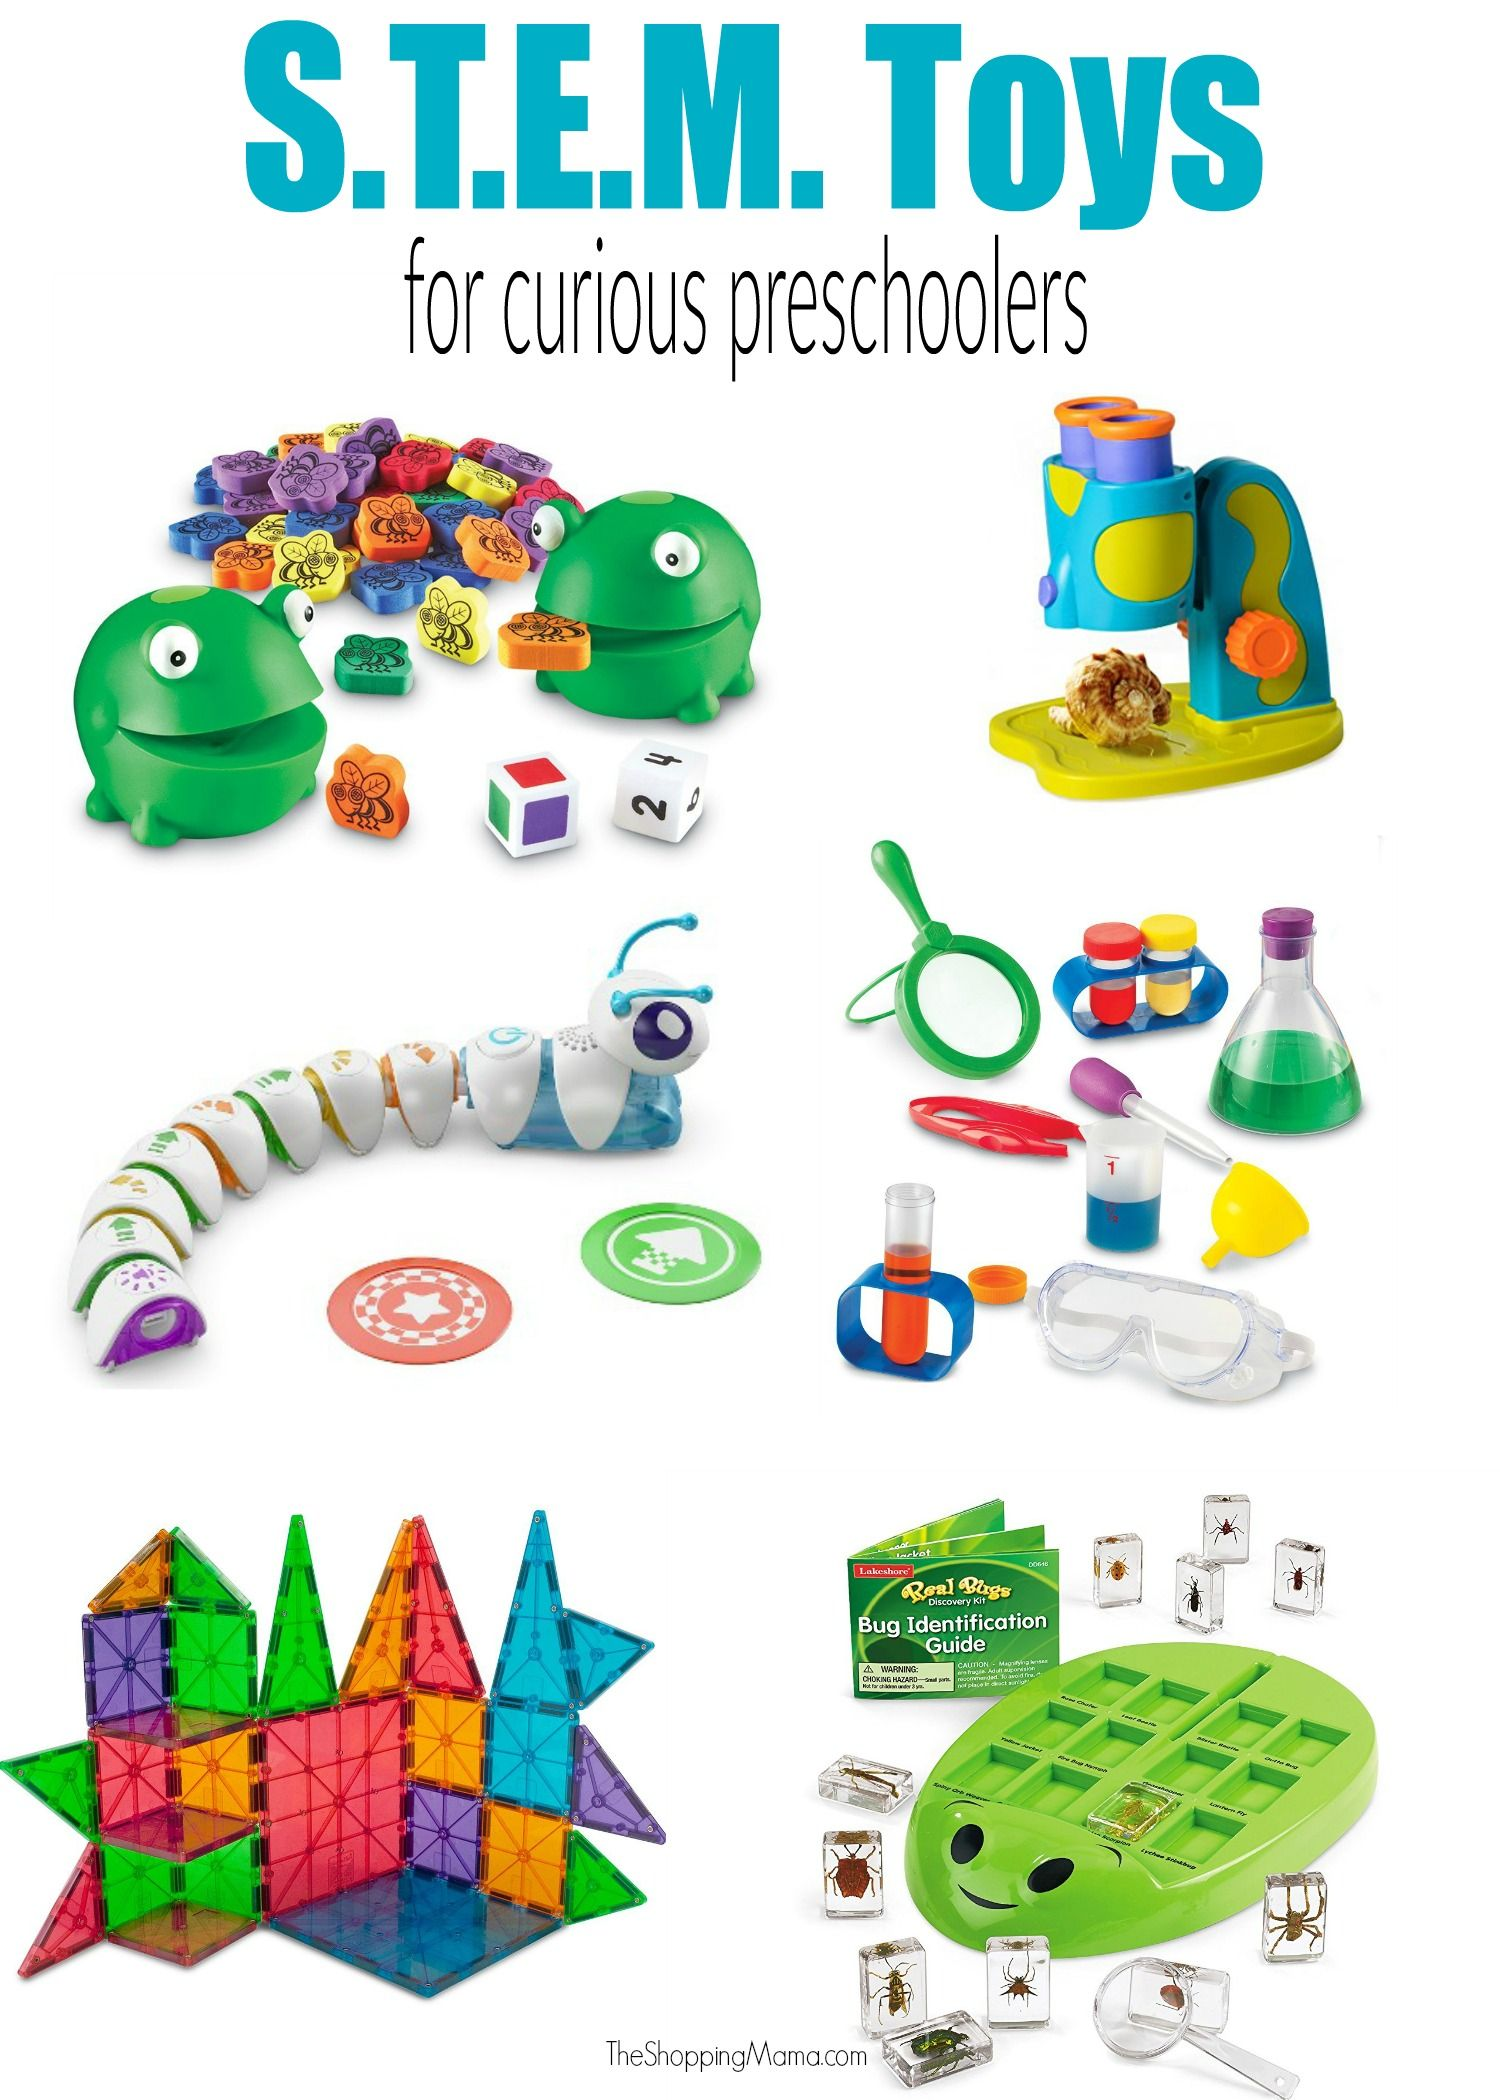 Permalink to Unique Stem toys for Preschoolers Pics